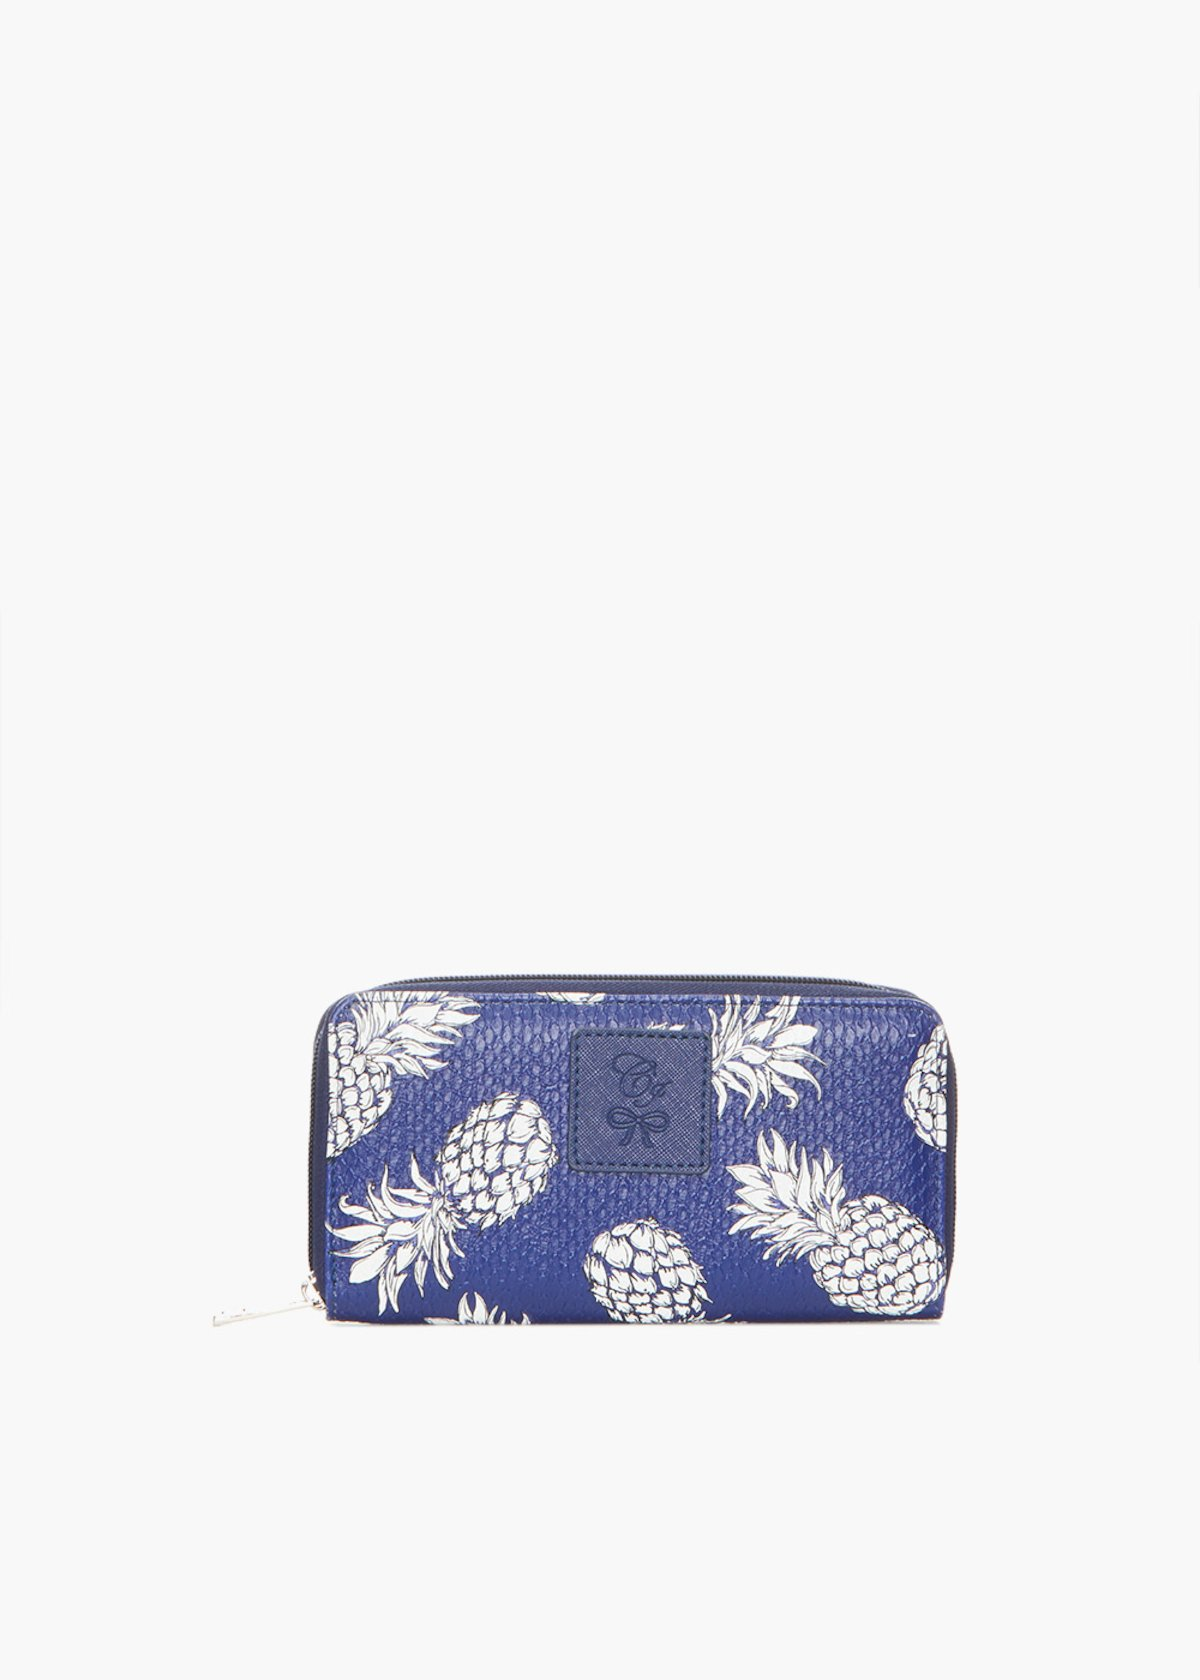 Piper faux leather wallet - Night Fantasia - Woman